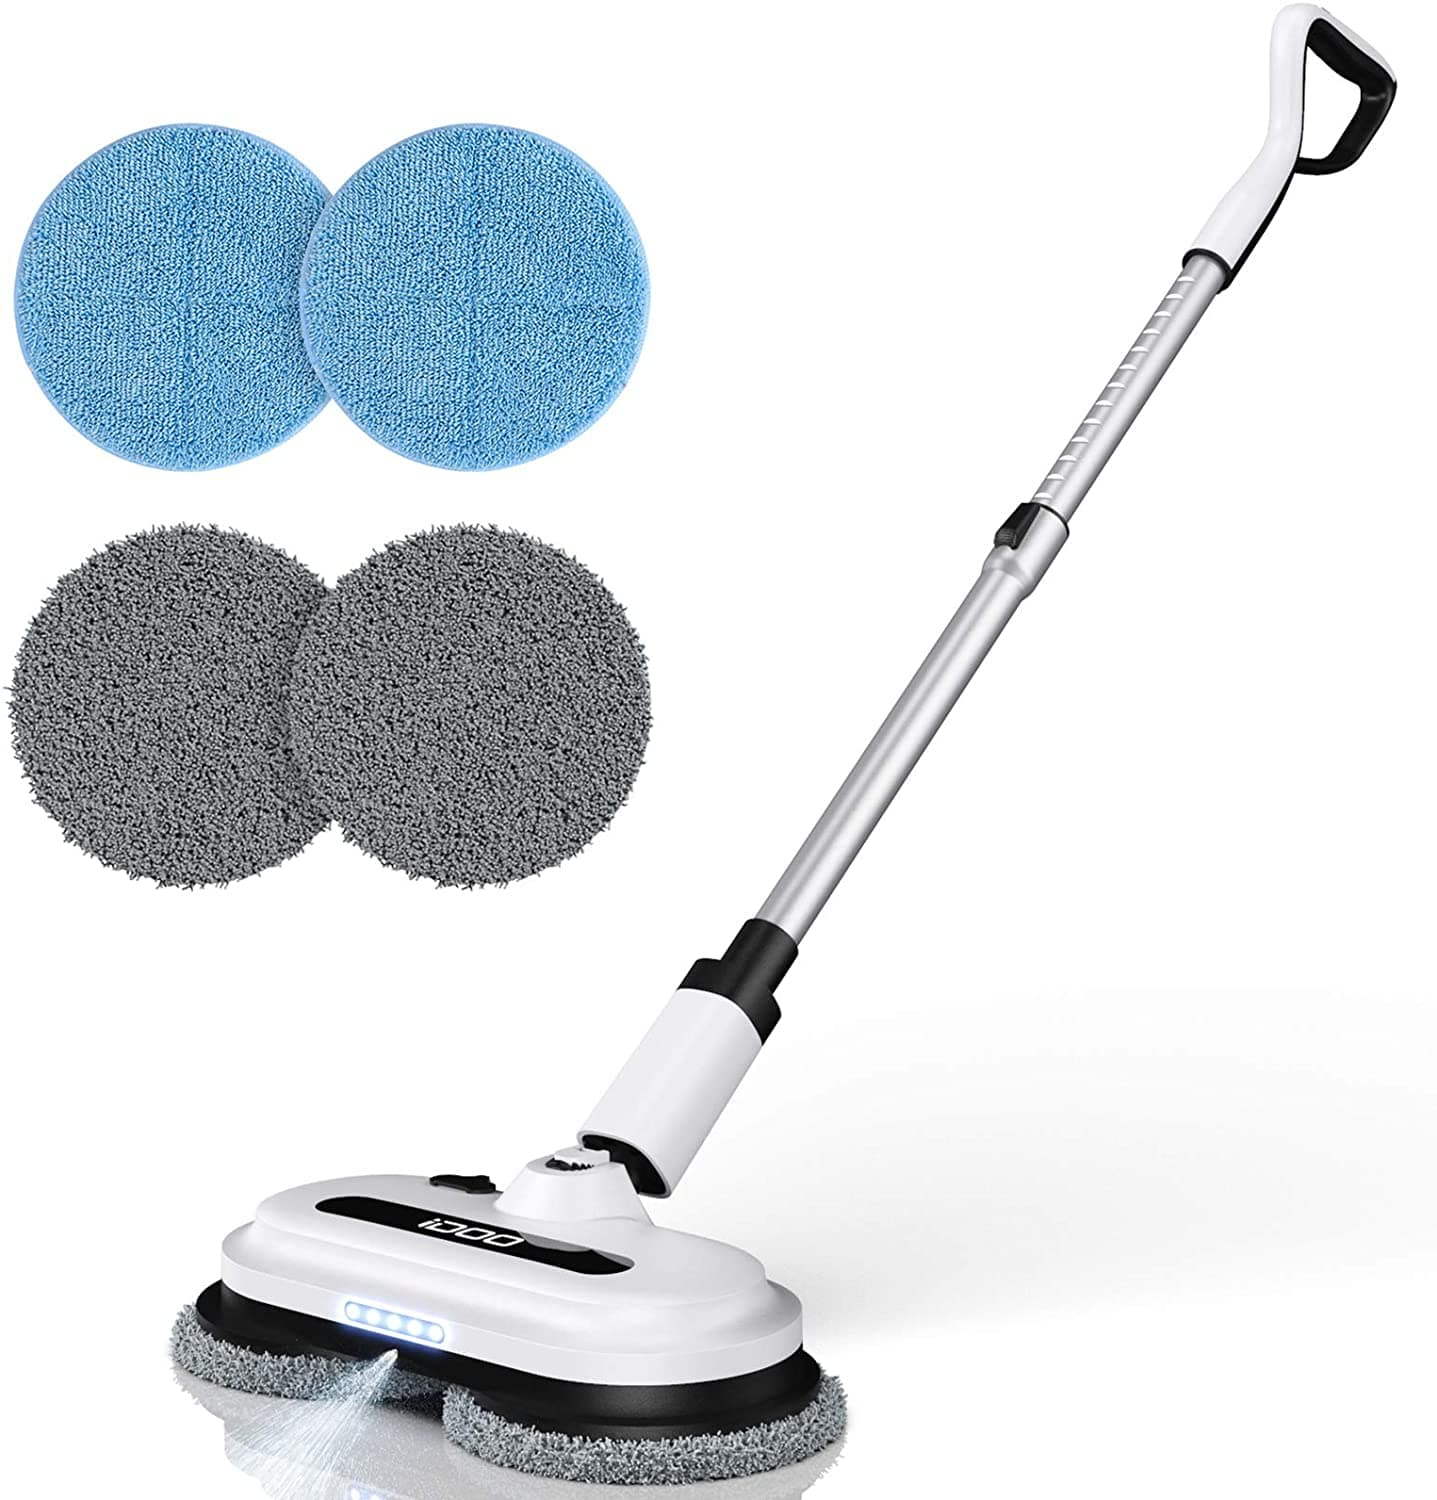 IDOO Cordless Electric Spin Mop